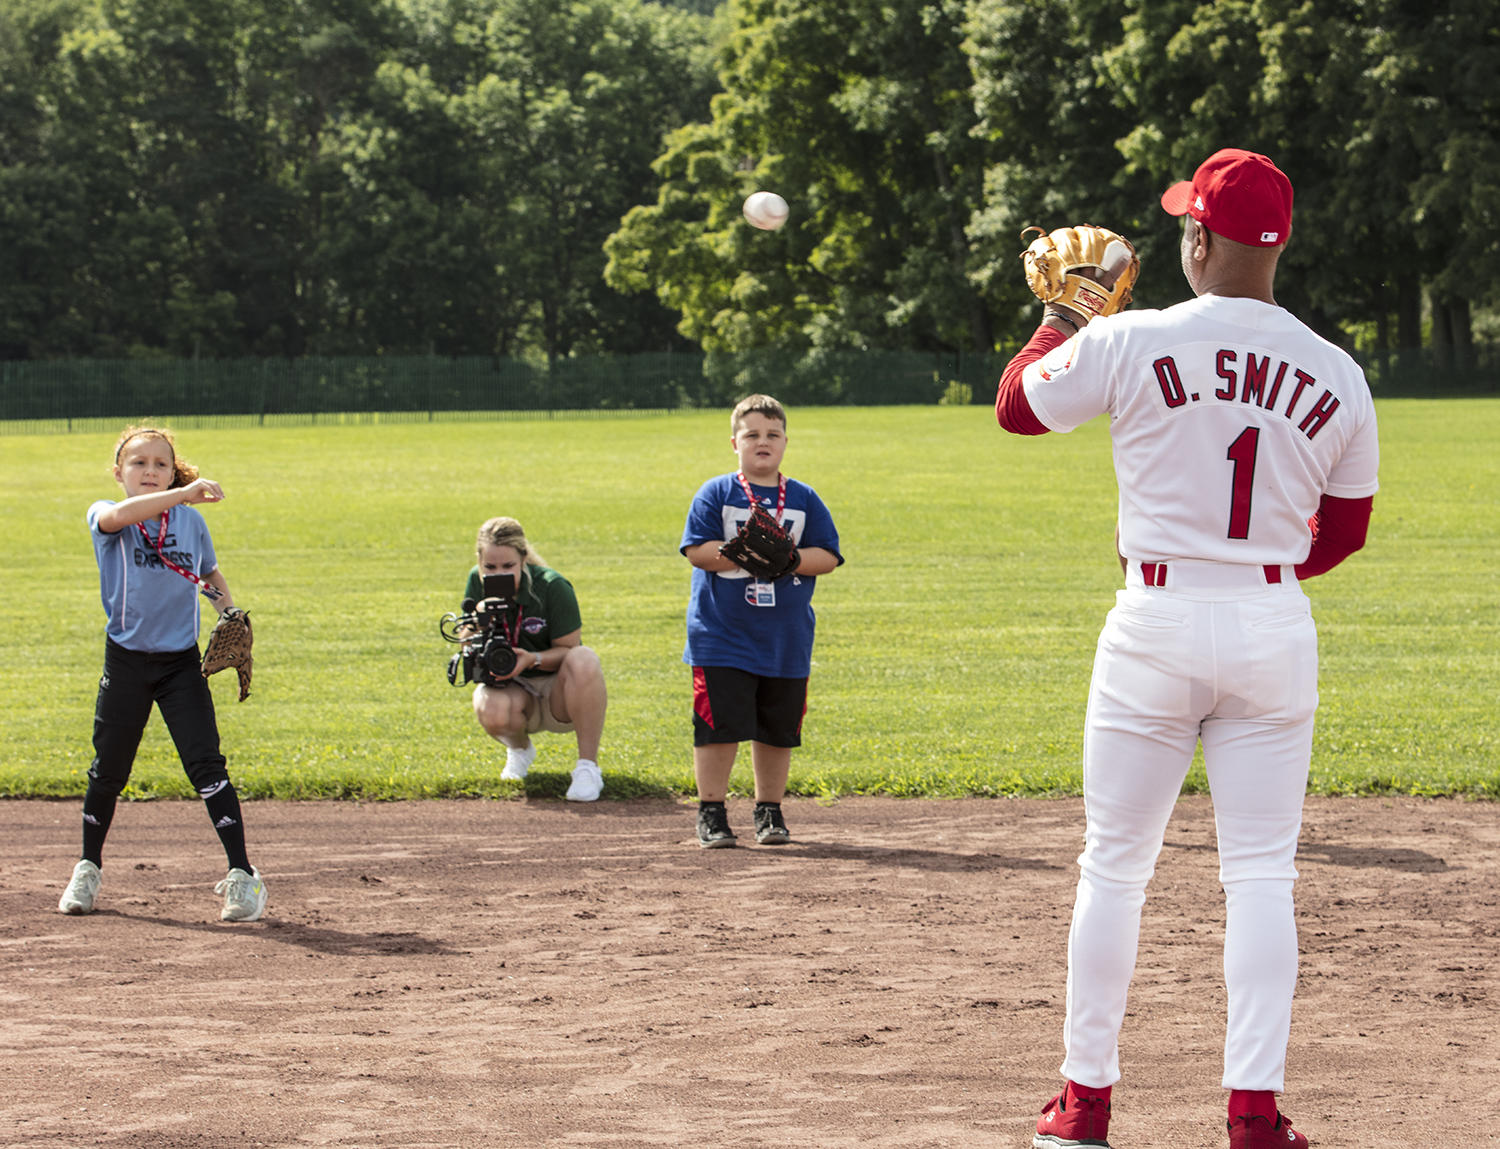 Ozzie Smith plays catch with a young fan on Friday in Cooperstown during the PLAY Ball event. (Milo Stewart Jr./National Baseball Hall of Fame and Museum)